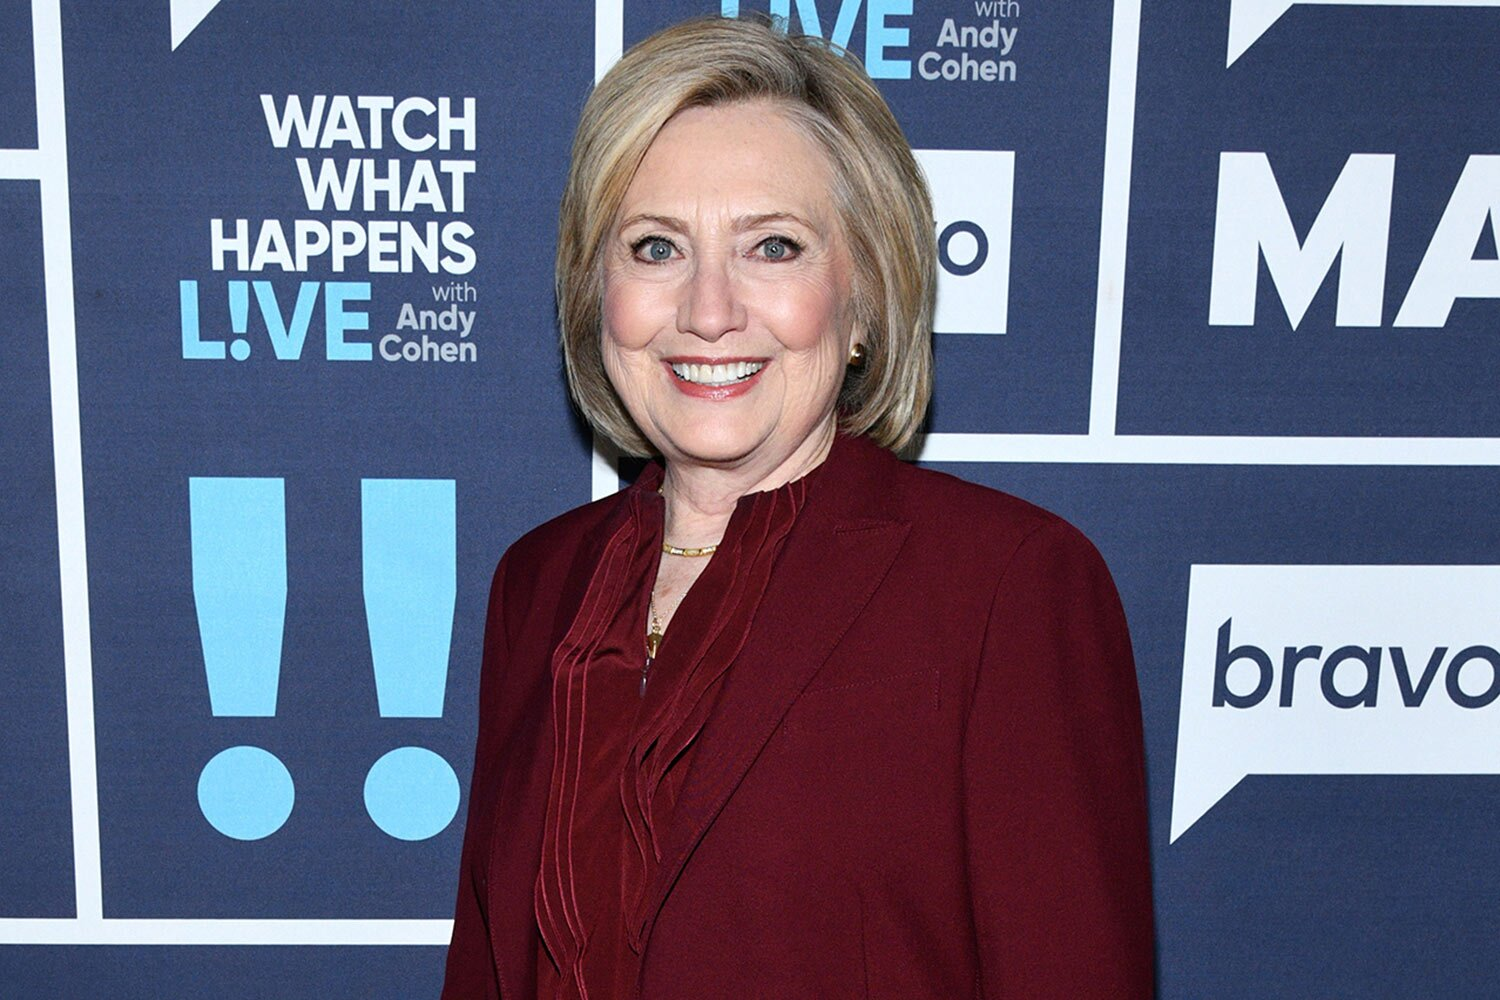 Clinton Family Celebrates Thanksgiving with Throwback Photo | PEOPLE.com